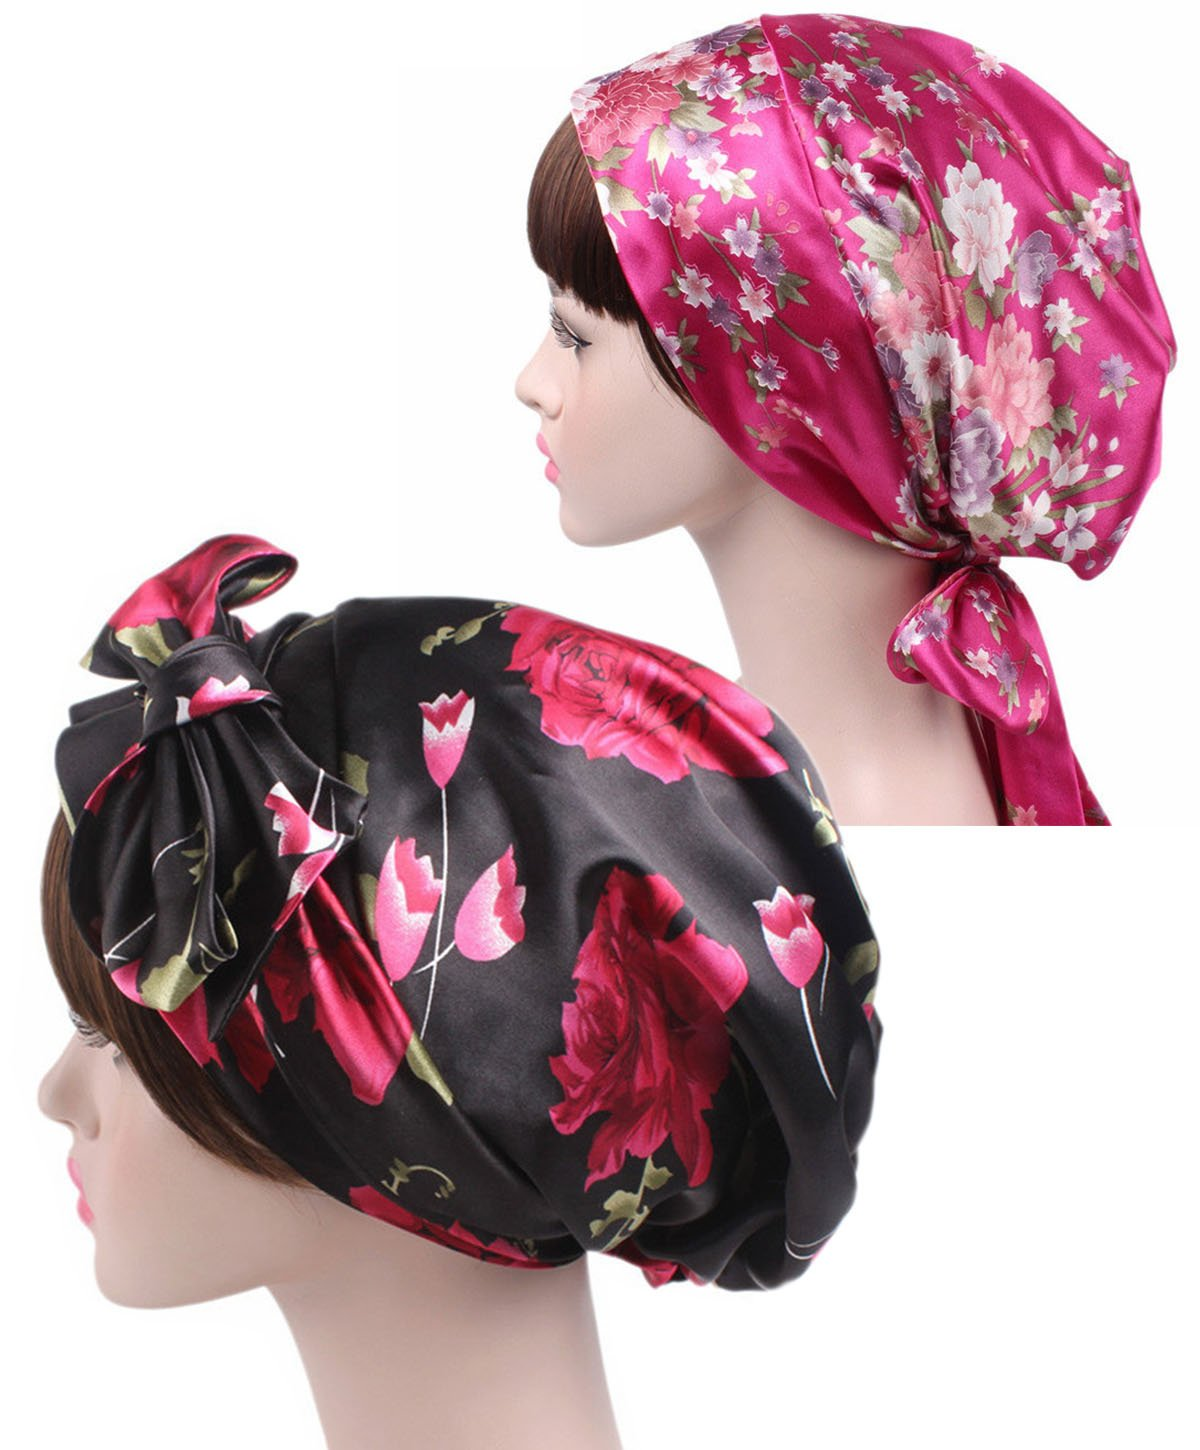 2 Packs Satin Silk Hair Bonnet - Floral Sleeping Cap for Women Patient Chemo Hat fits Long Curly Natural Hair.